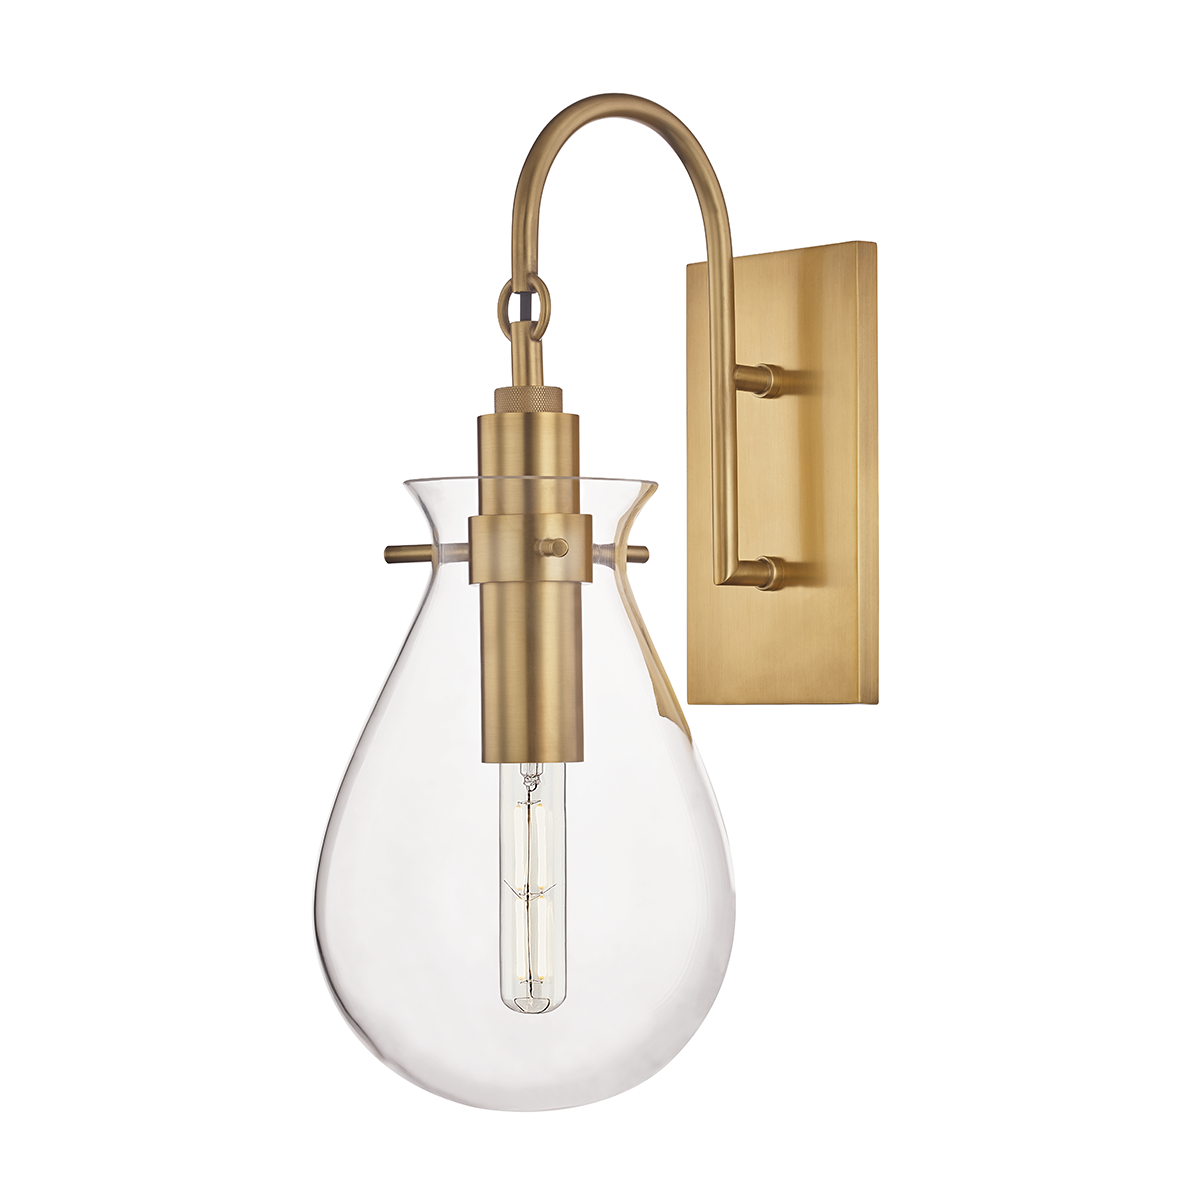 Ivy Wall Sconces Wall Sconce Lighting Sconces